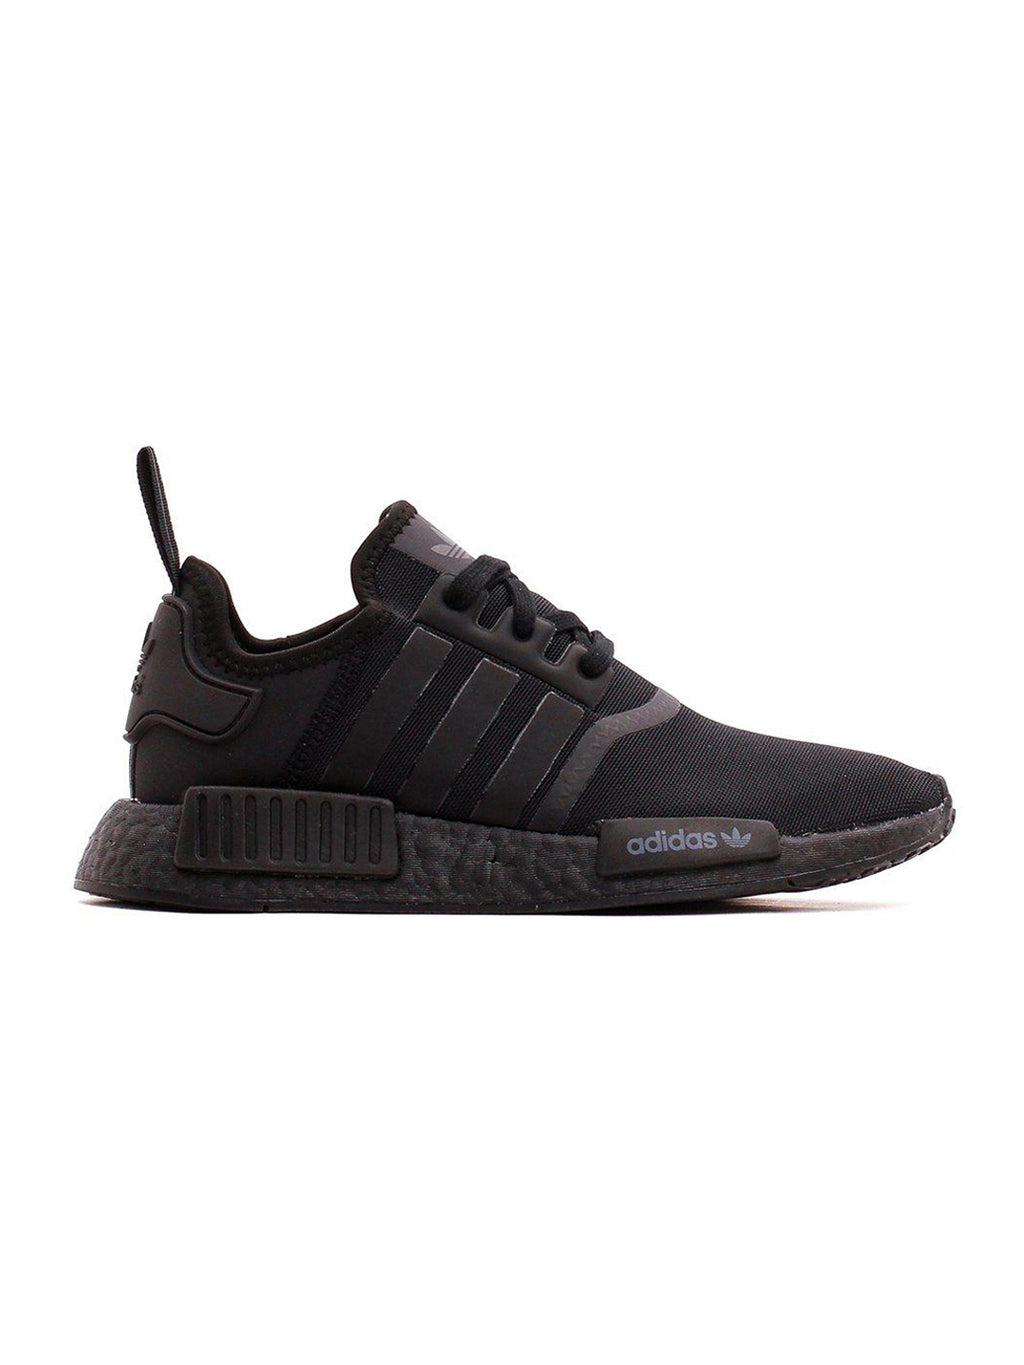 Black NMD R1 Boost Sneakers